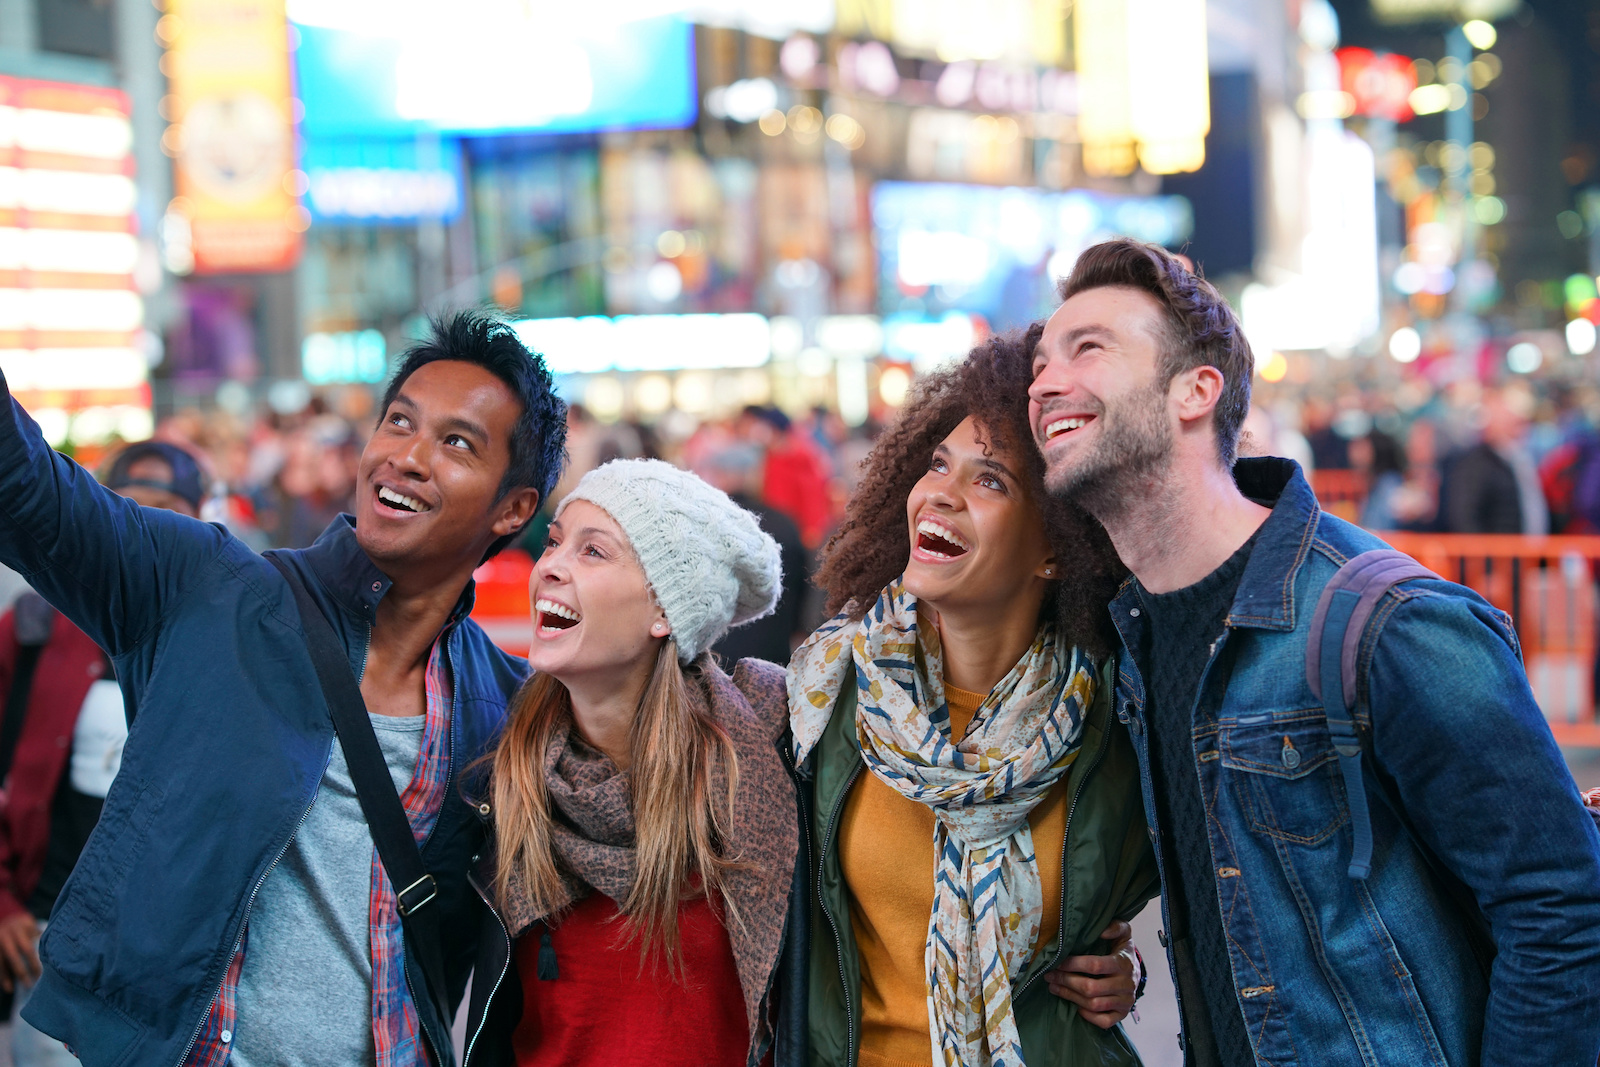 internships in NYC: four happy people  looking up